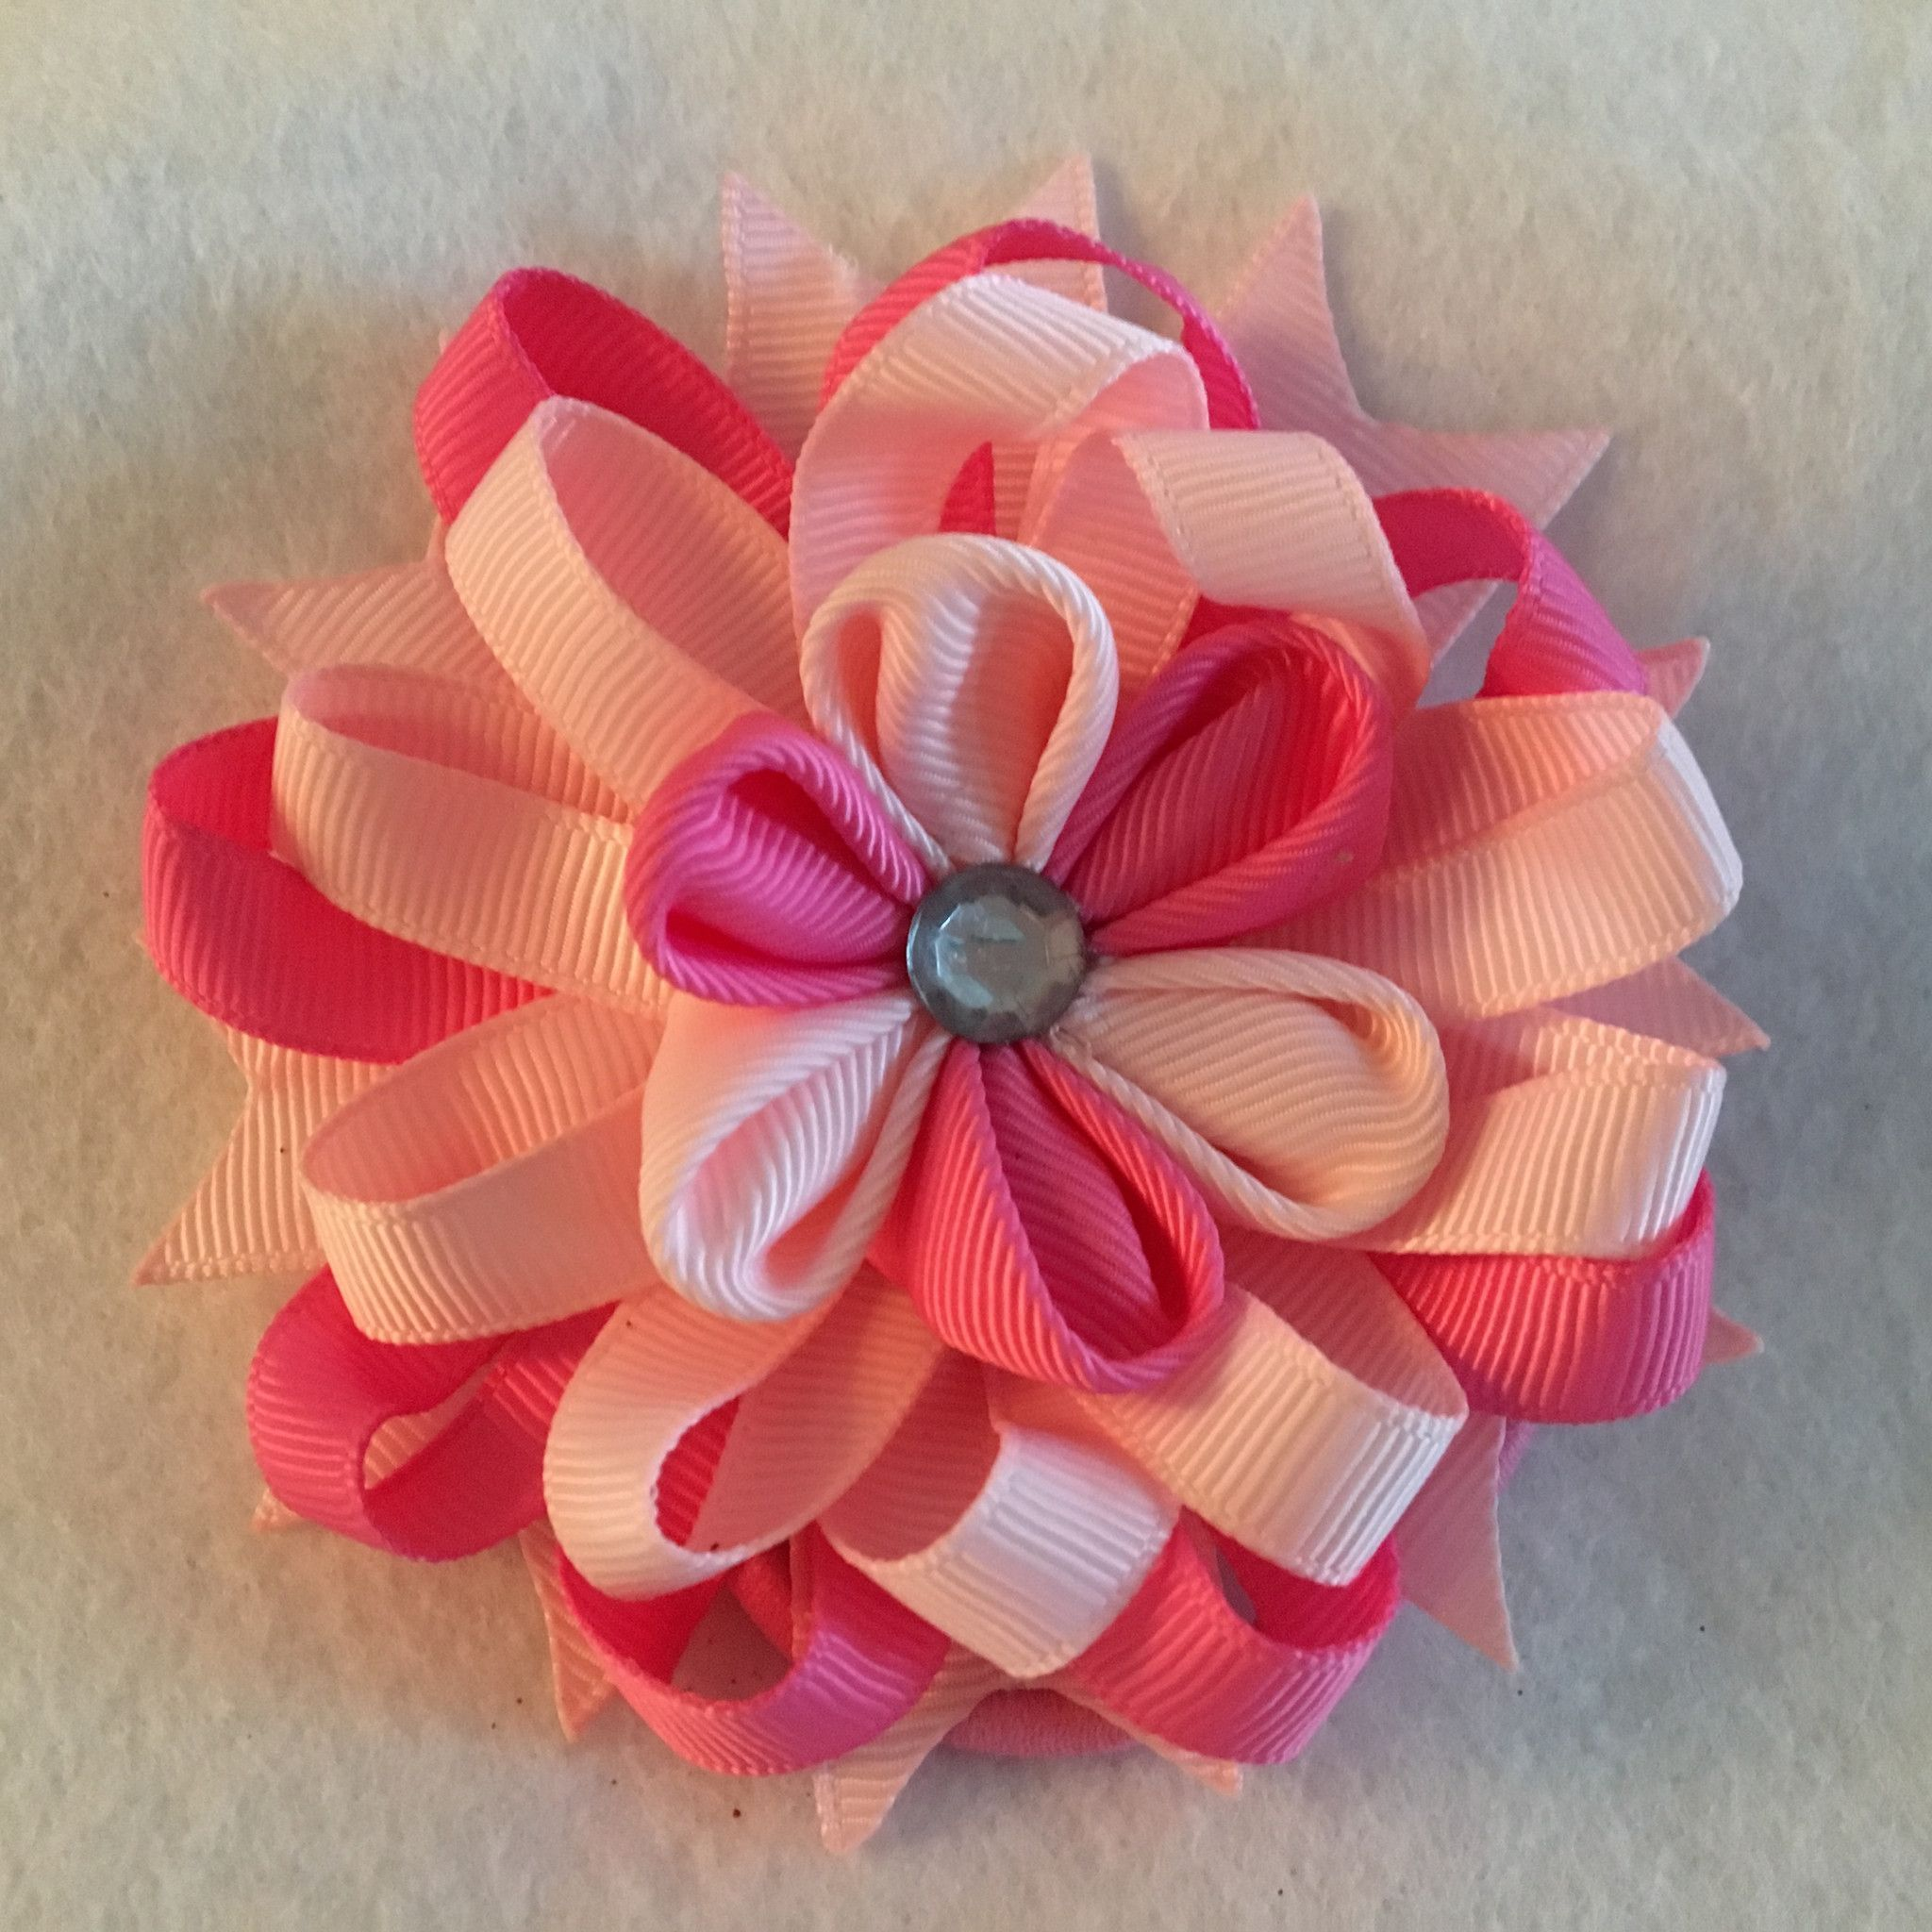 Stacked Flower, Ribbon Flower, Ponytail Holder, Flower Ponytail Holder, Stacked Flower Ponytail Holder, Kanzashi Flower